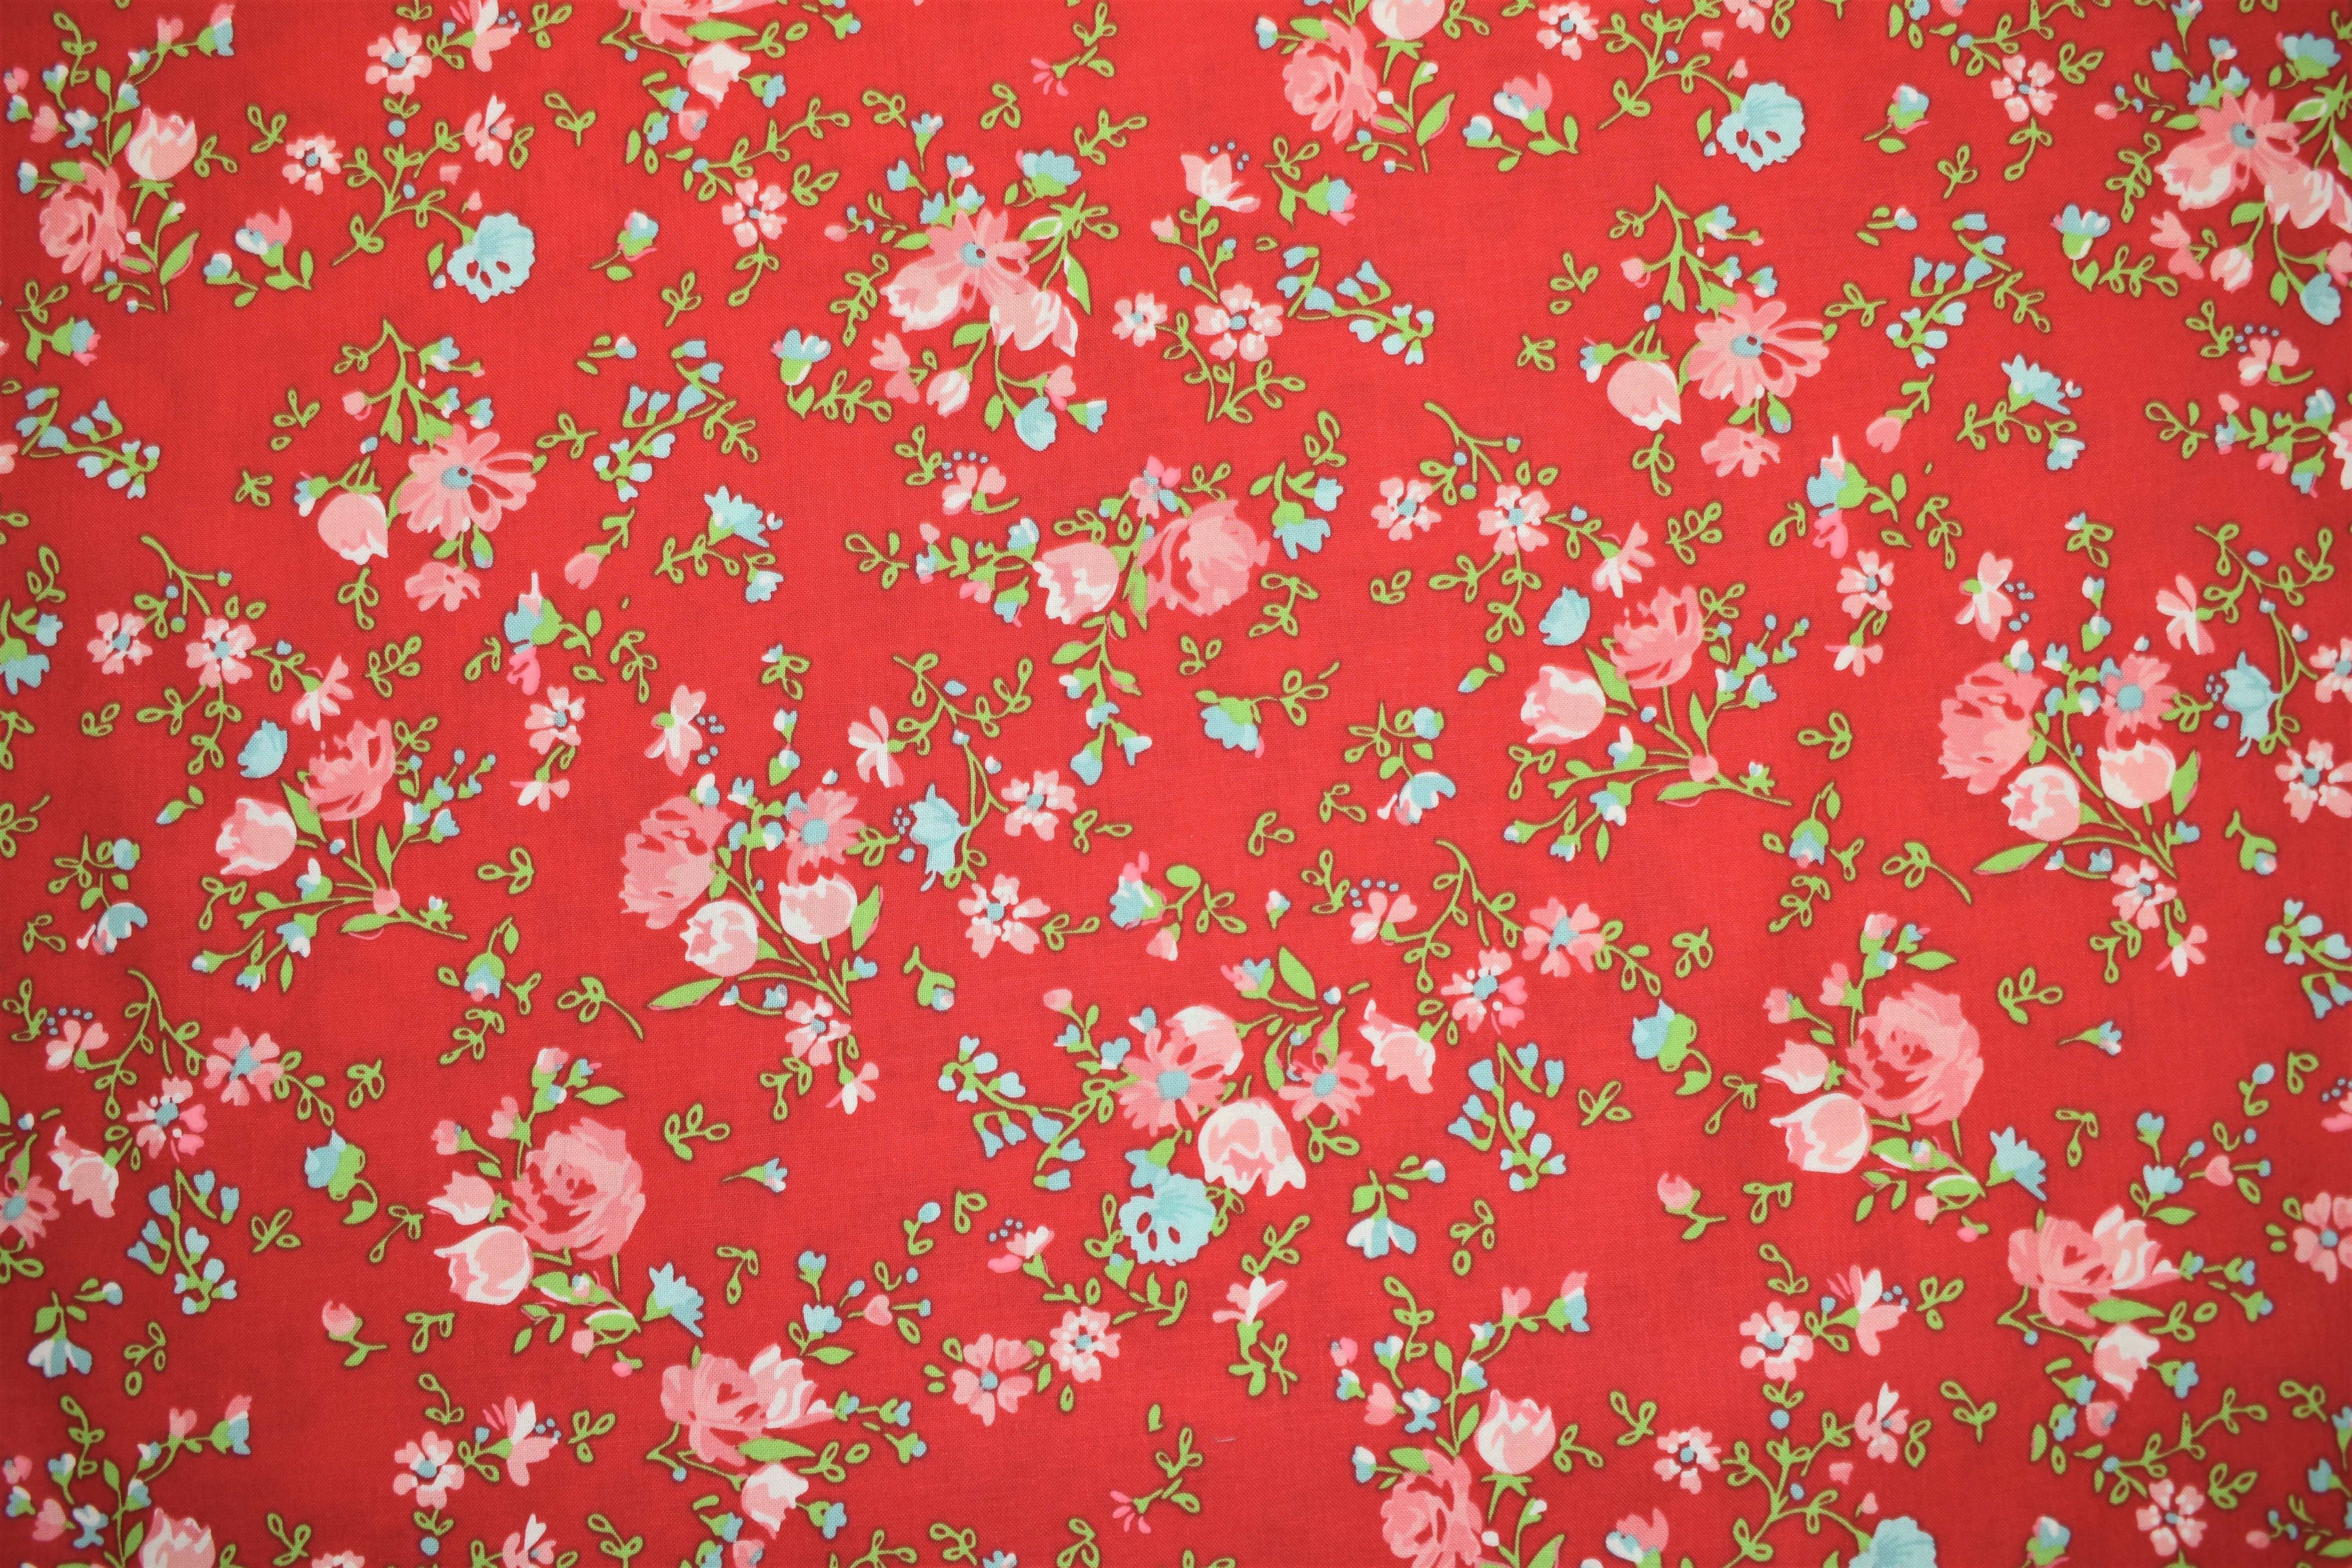 Red Background with Flowers - Elm Park - Laura Ashley CA6FK9WF